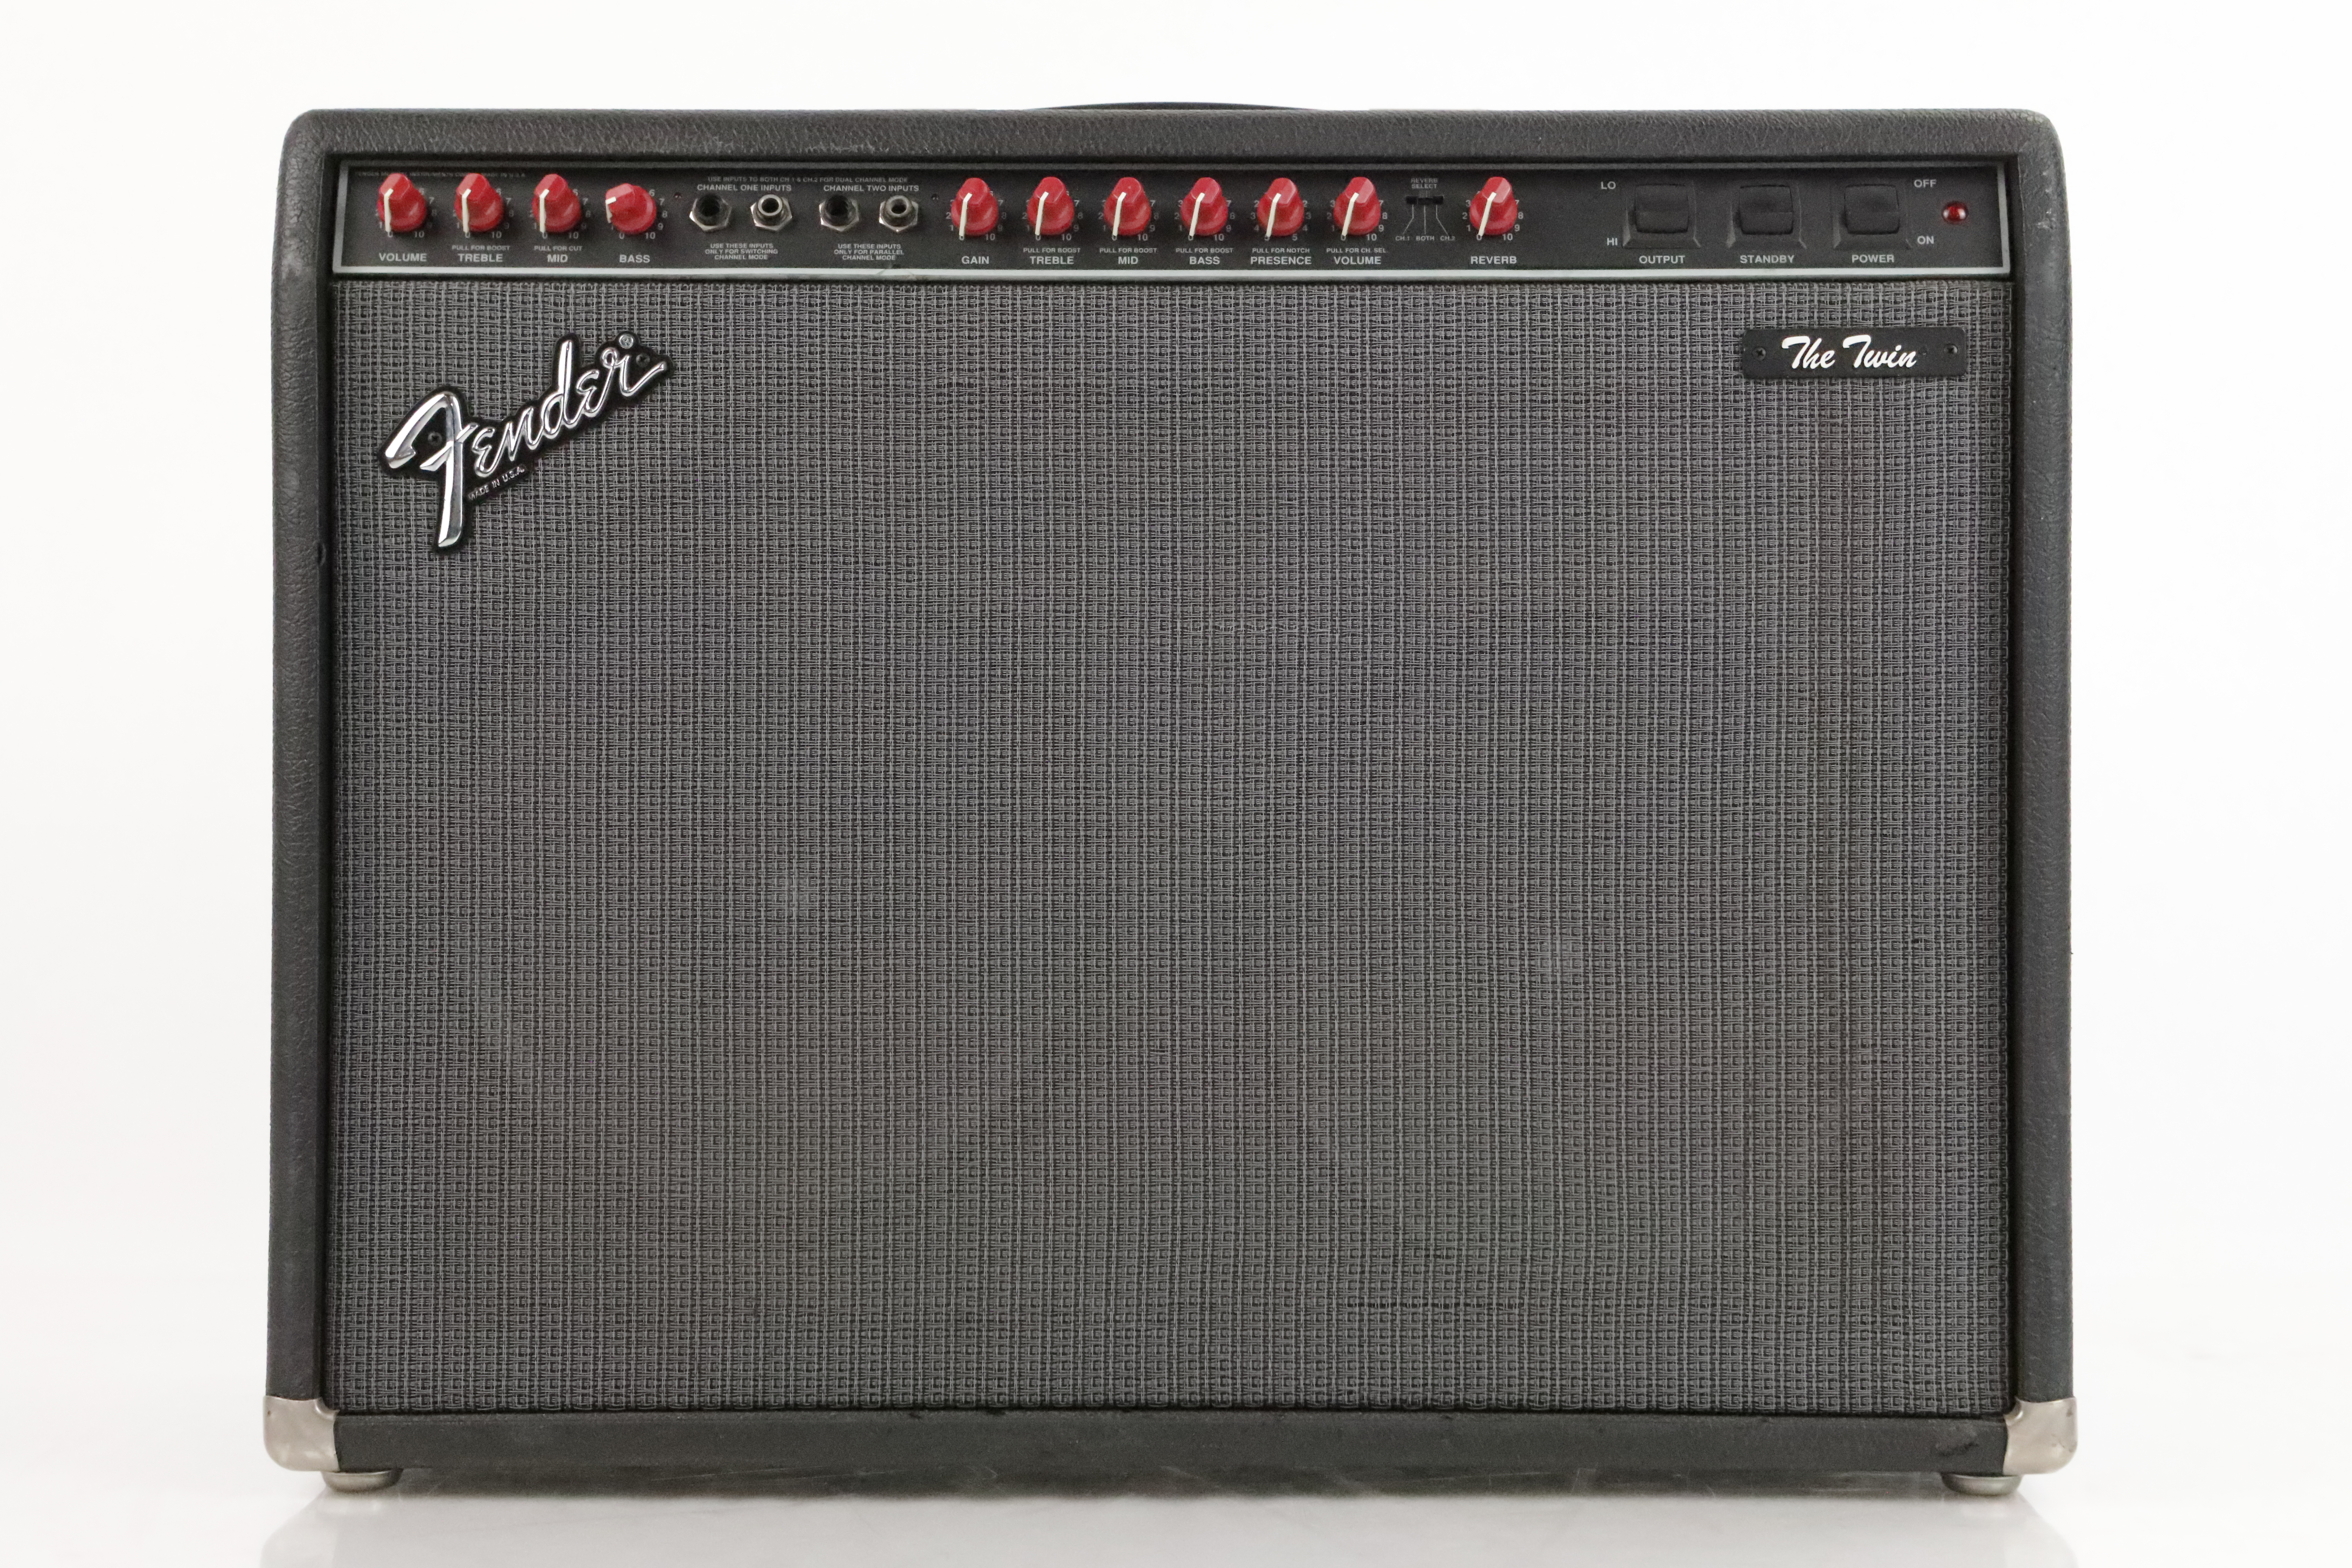 Fender The Twin Red Knob Tube Combo 2x12 Guitar Amplifier w/ Footswitch #35013